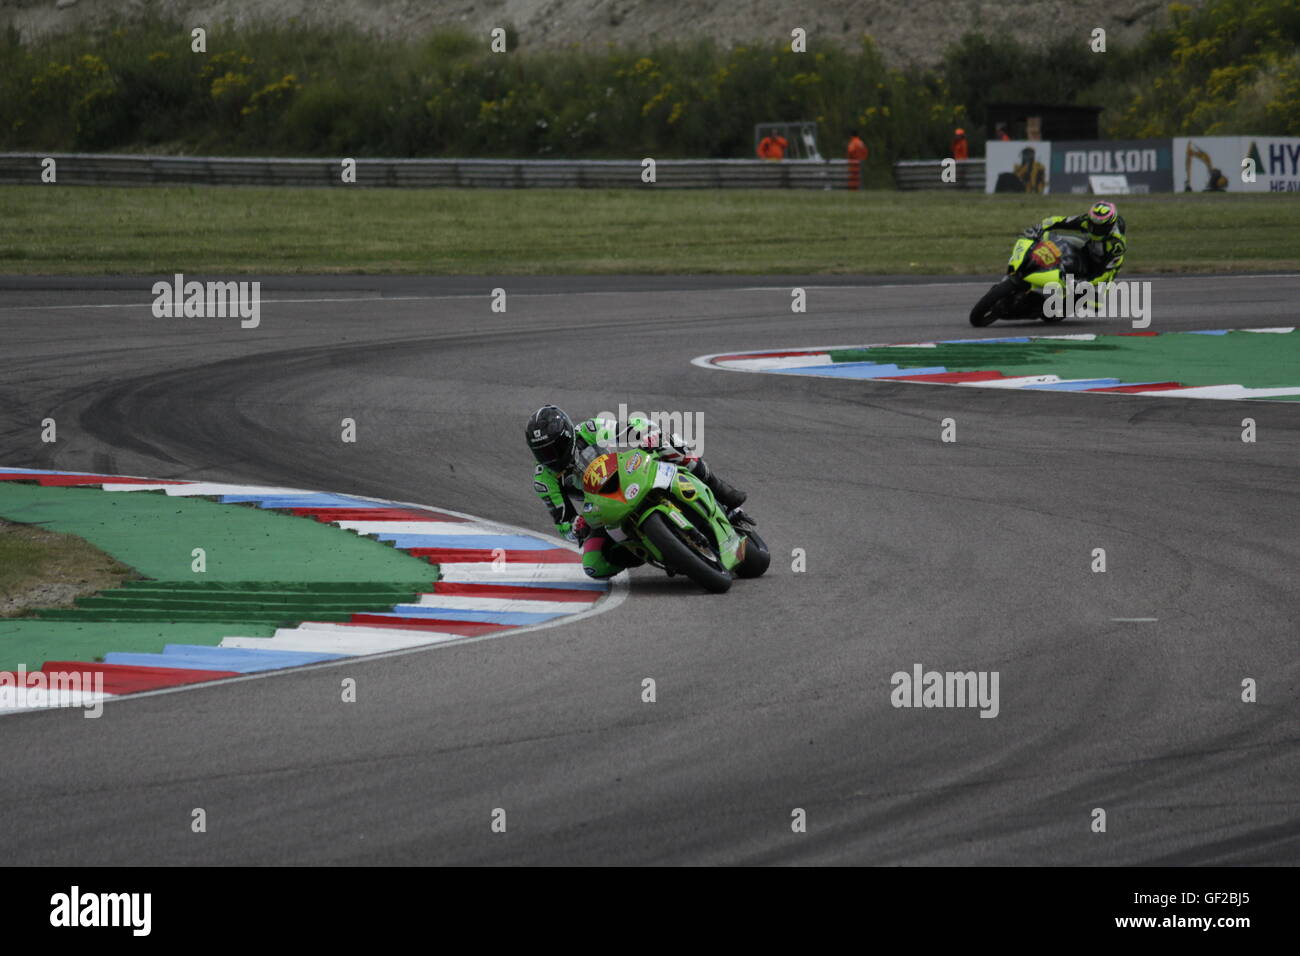 Nick Anderson (47) racing in the Pirelli National Superstock 600 Championship qualifying rounds at Thruxton 23 July - Stock Image